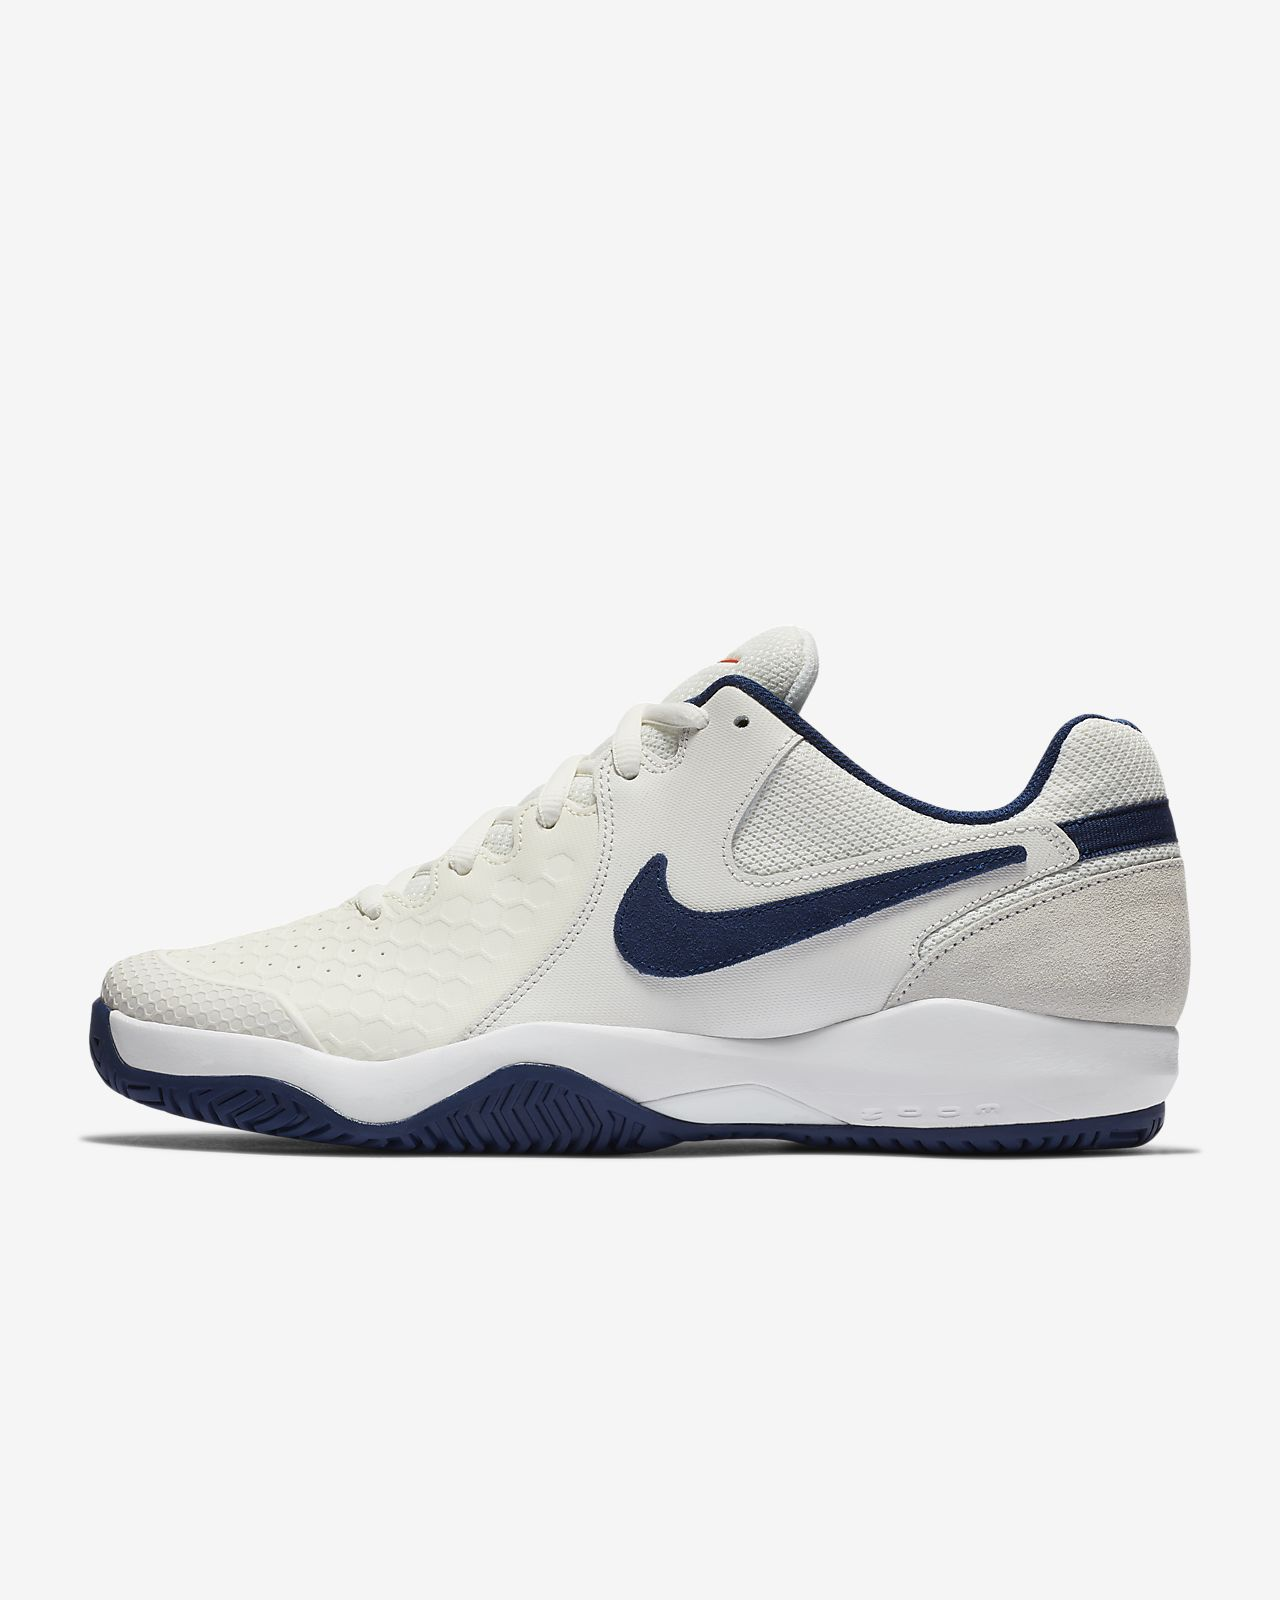 007acaff1a06f NikeCourt Air Zoom Resistance Men s Hard Court Tennis Shoe. Nike.com HU